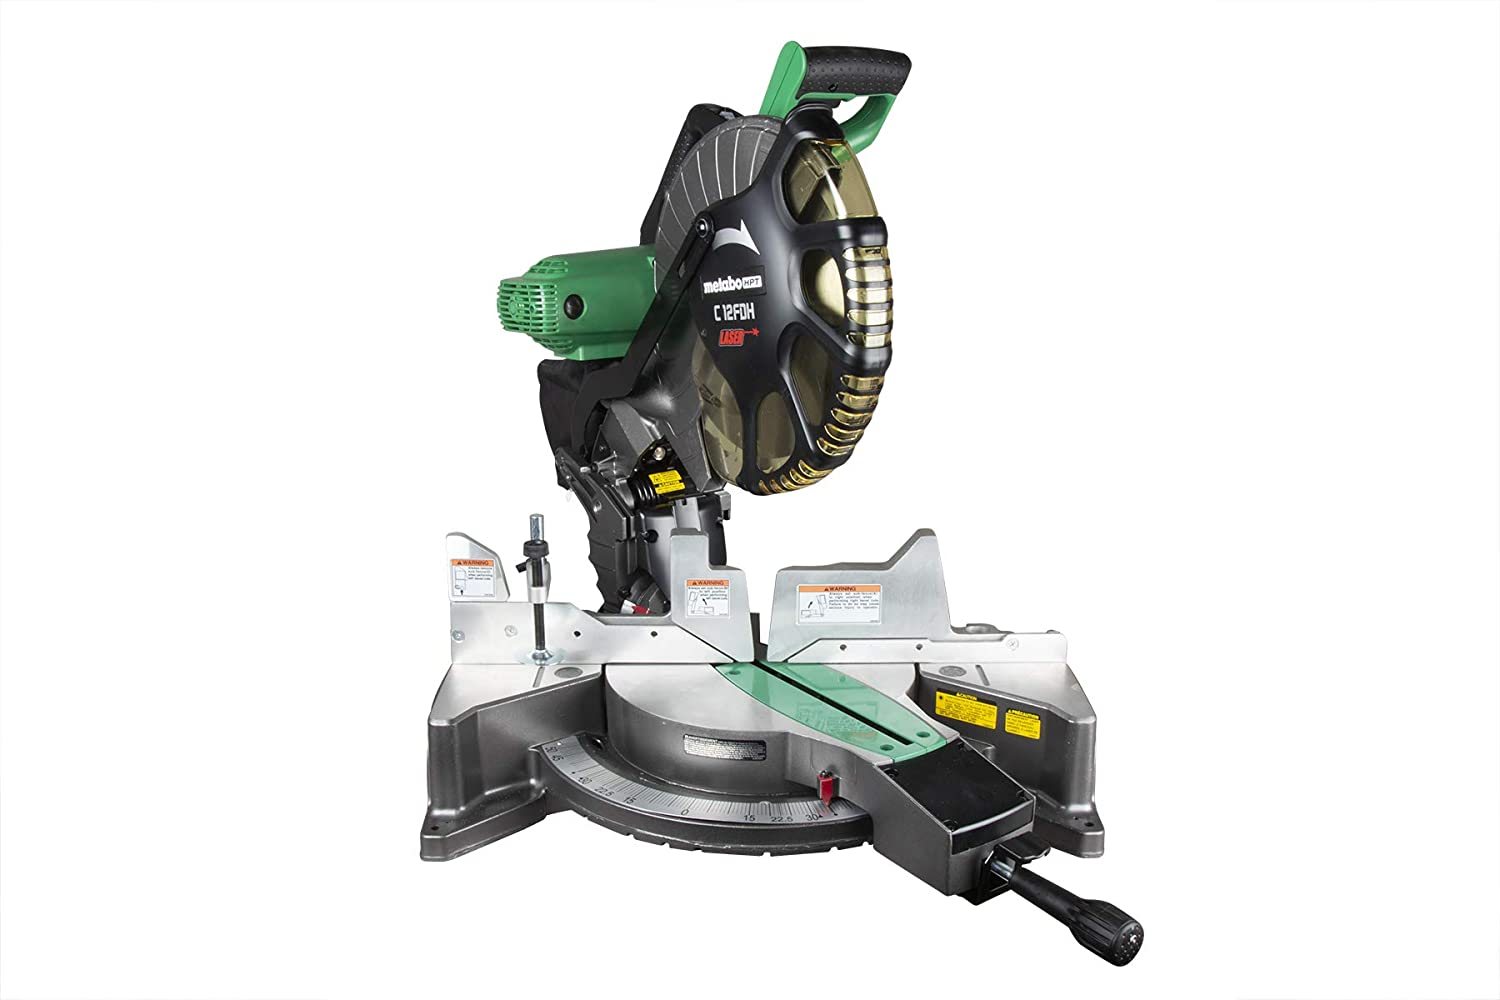 Metabo HPT C12FDHS 12 Double Bevel Compound Miter Saw, Laser Marker System, 15-Amp Motor, Tall Pivoting Aluminum Fence, Micro-Bevel Adjustment Knob, 5 Year Warranty